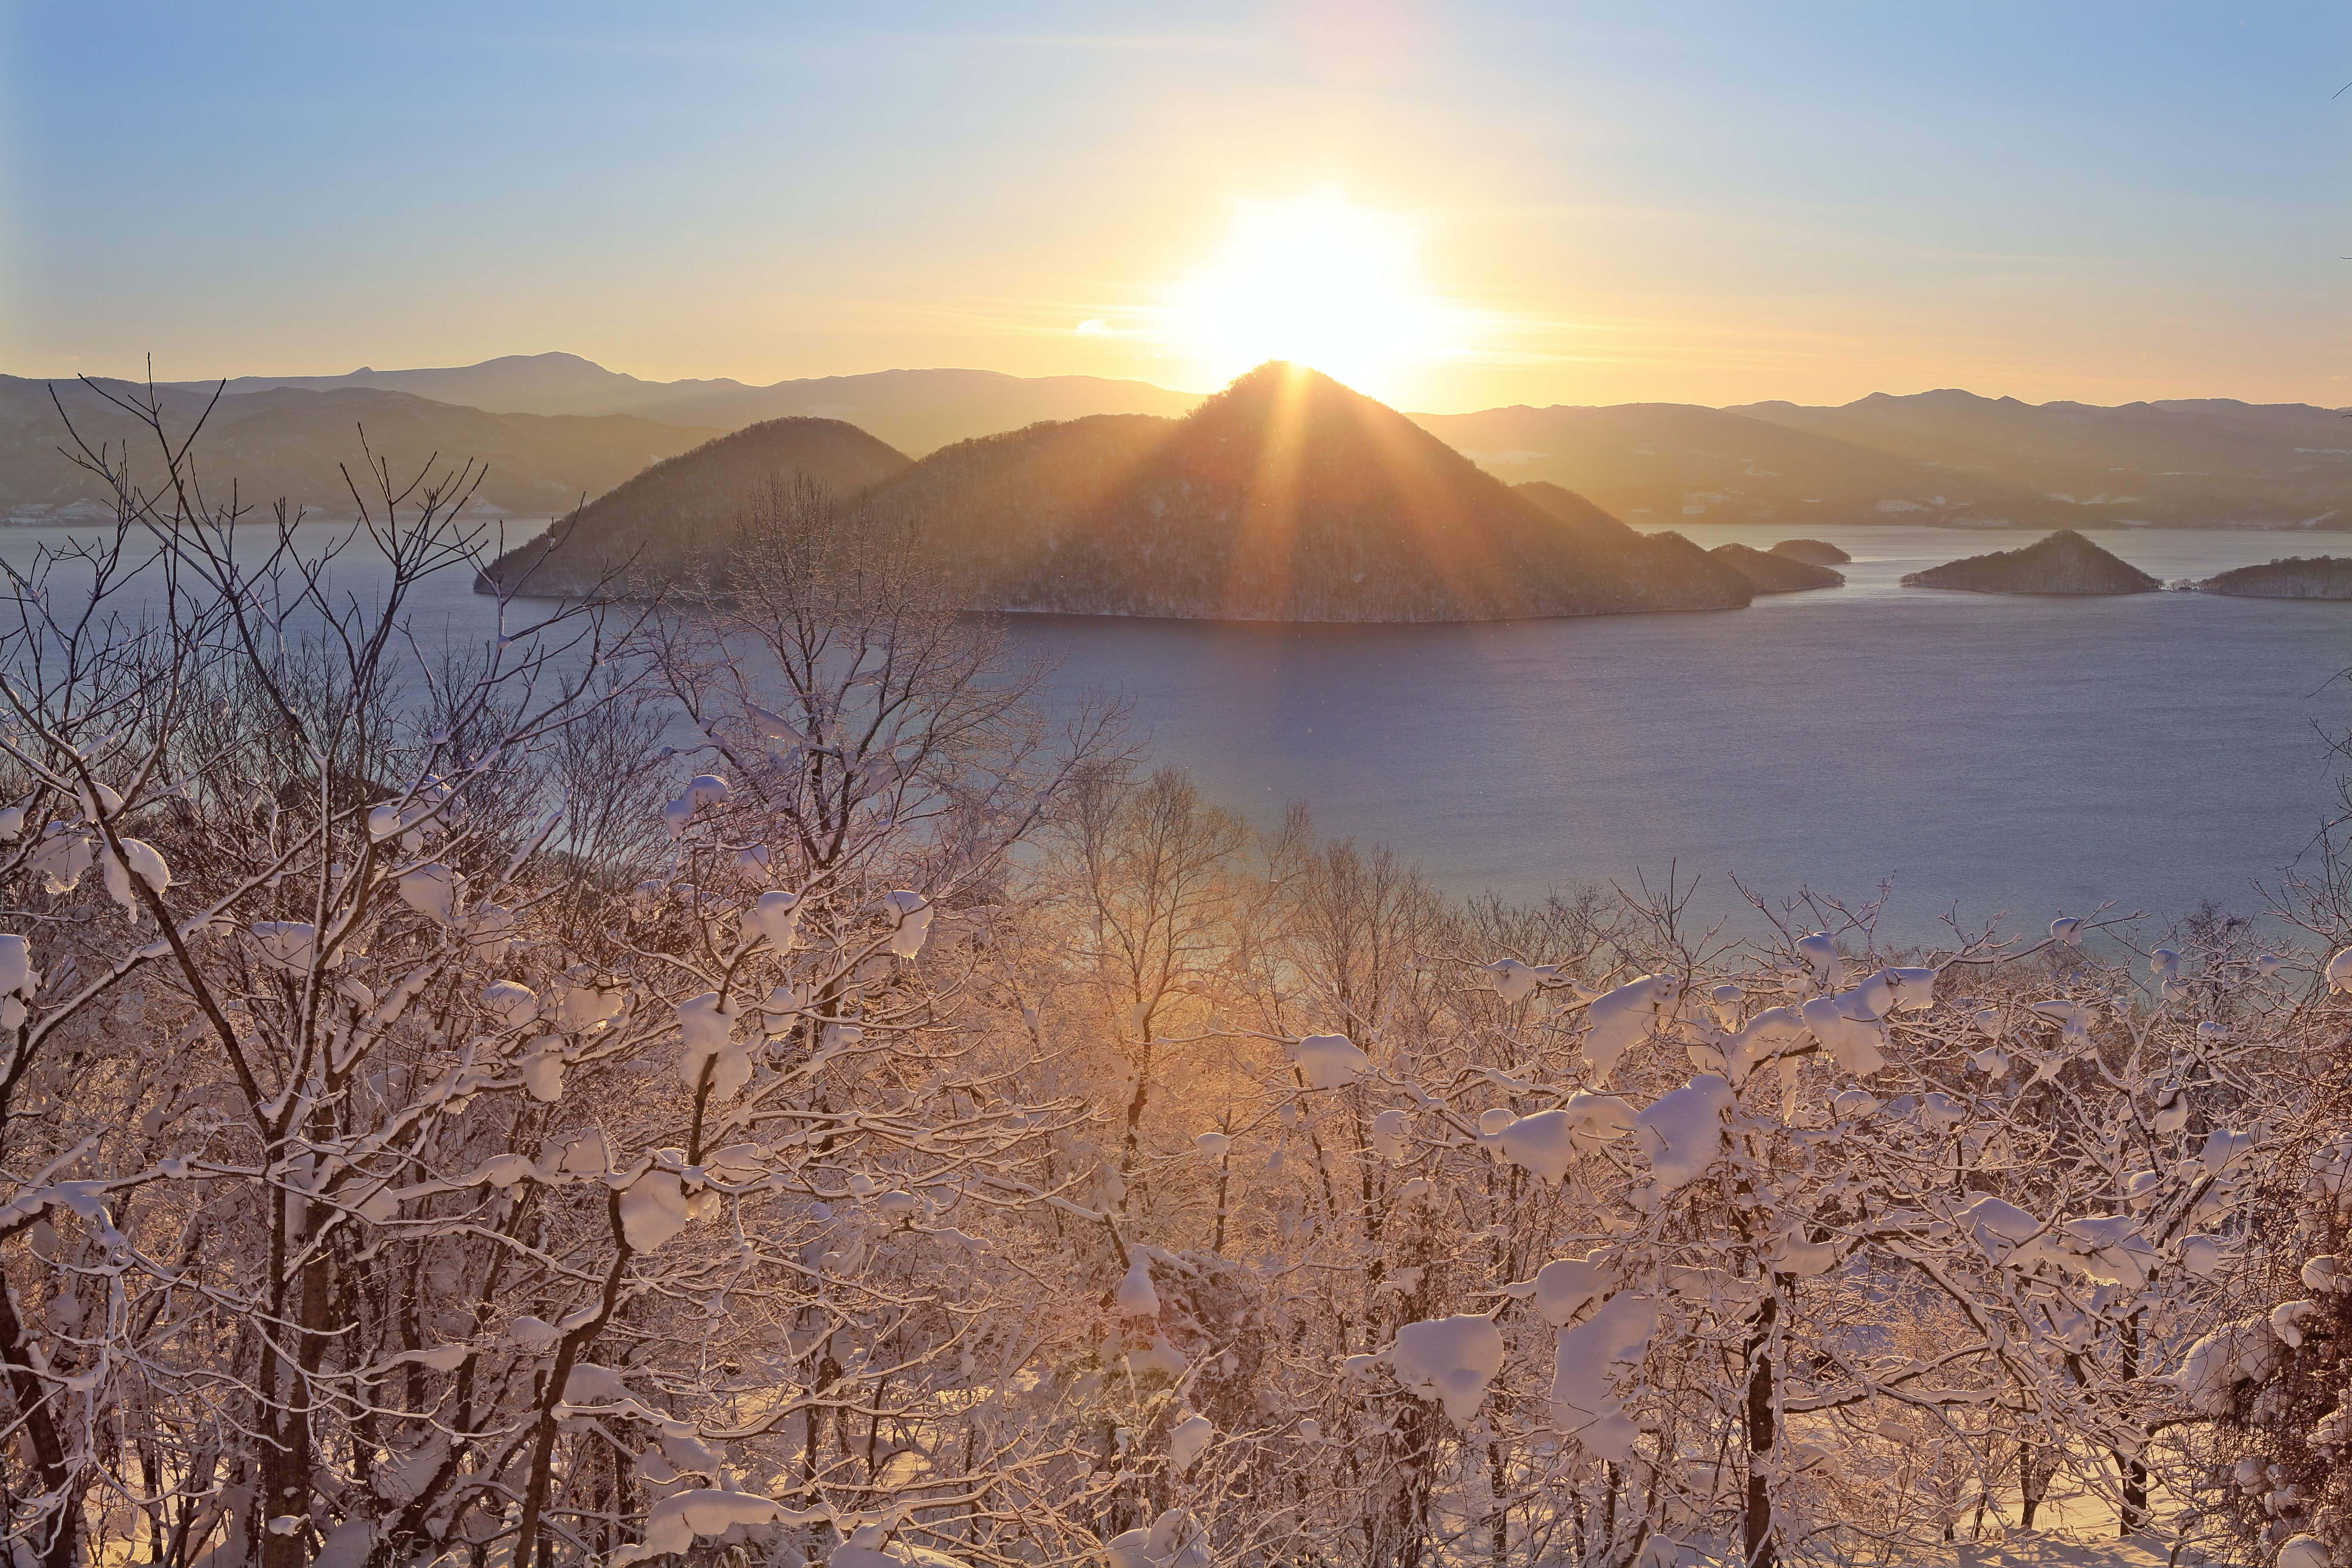 Discover what inspired photographers most in Hokkaido in Japan